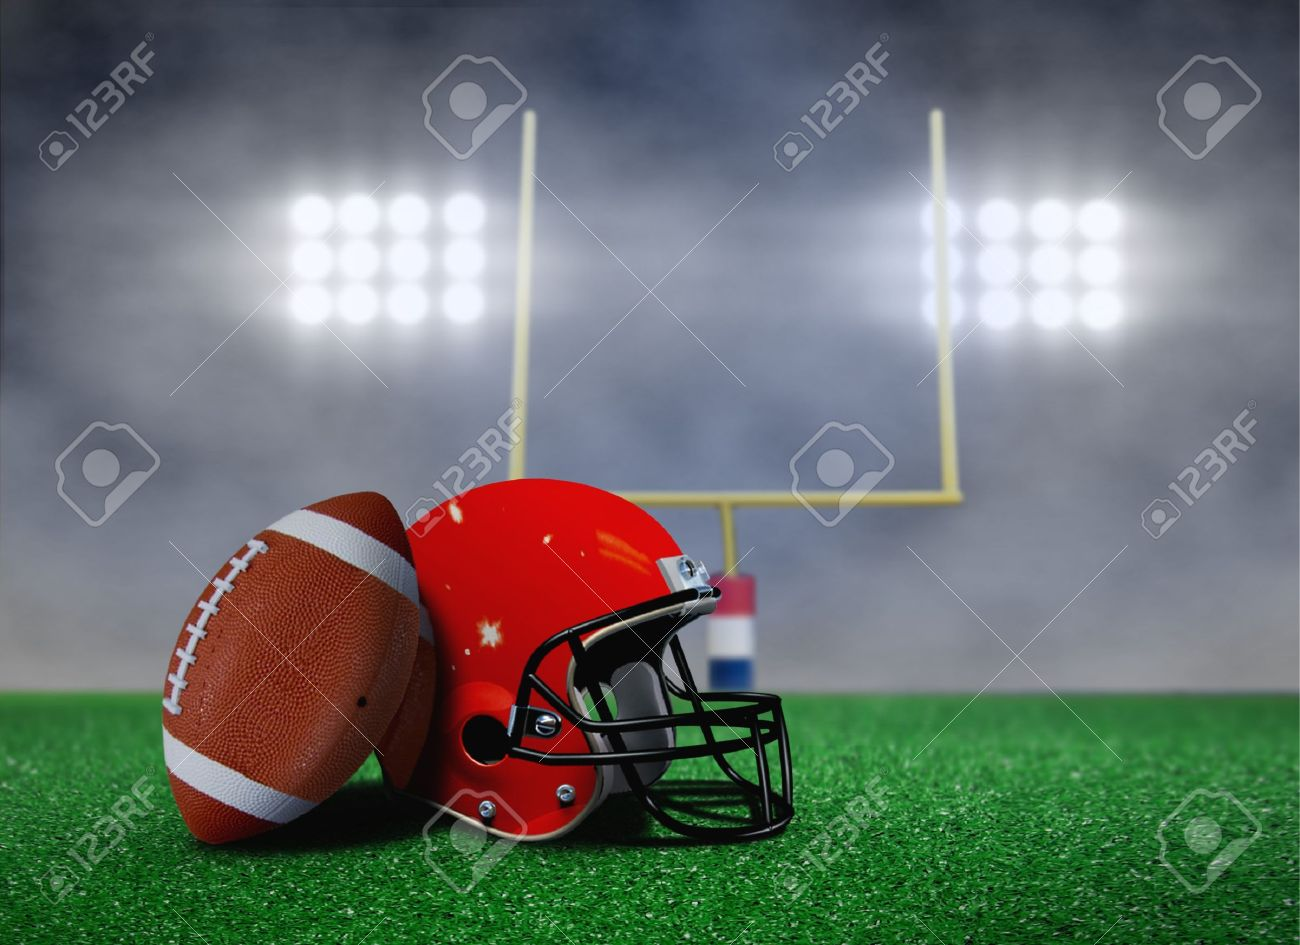 American Football and Helmet on Field with Goal Post under Spotlights - 22731891